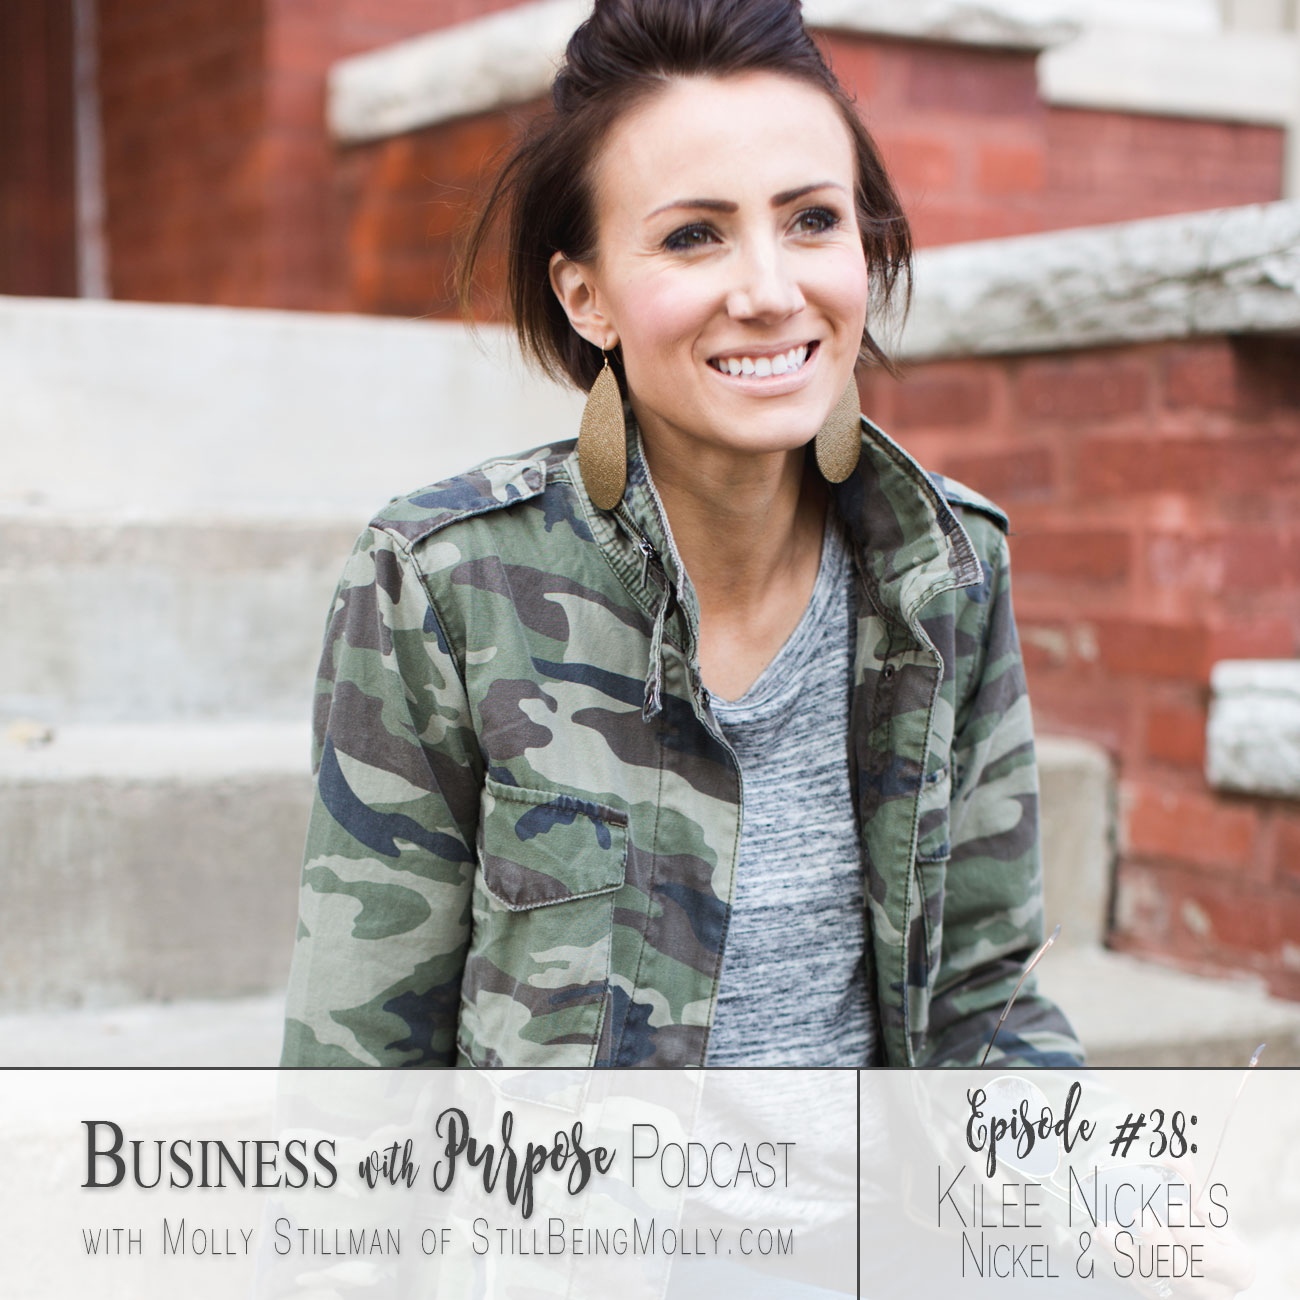 EP 38: Kilee Nickels, Founder of Nickel & Suede